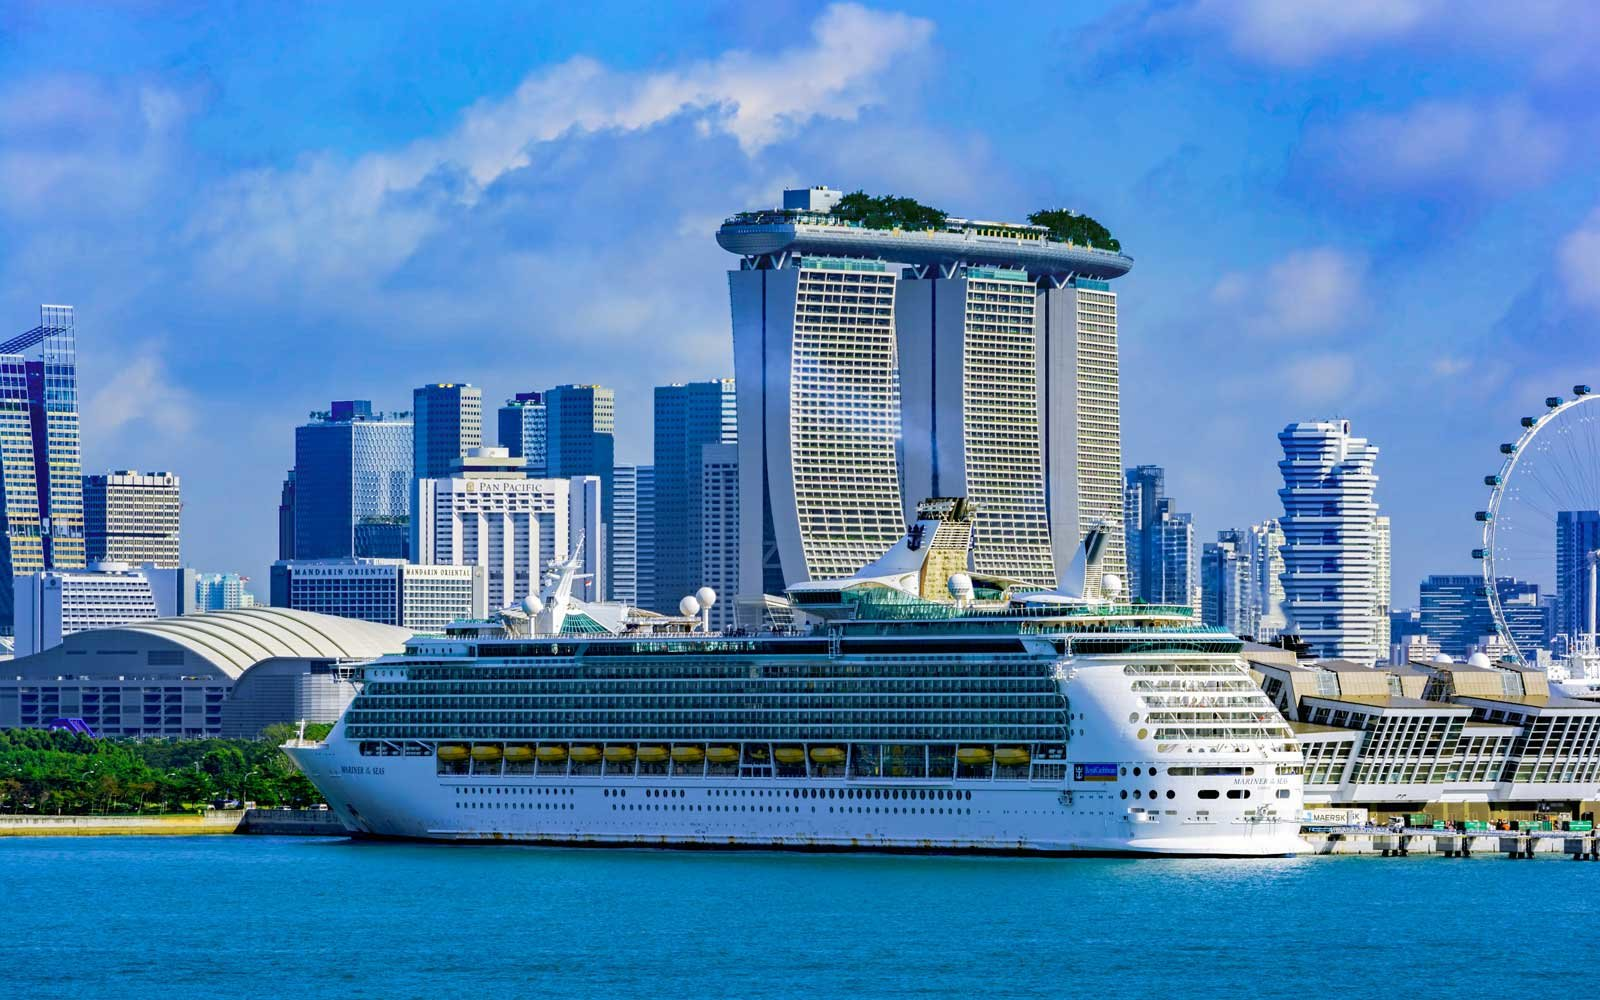 Royal Caribbean Spice Route Cruise